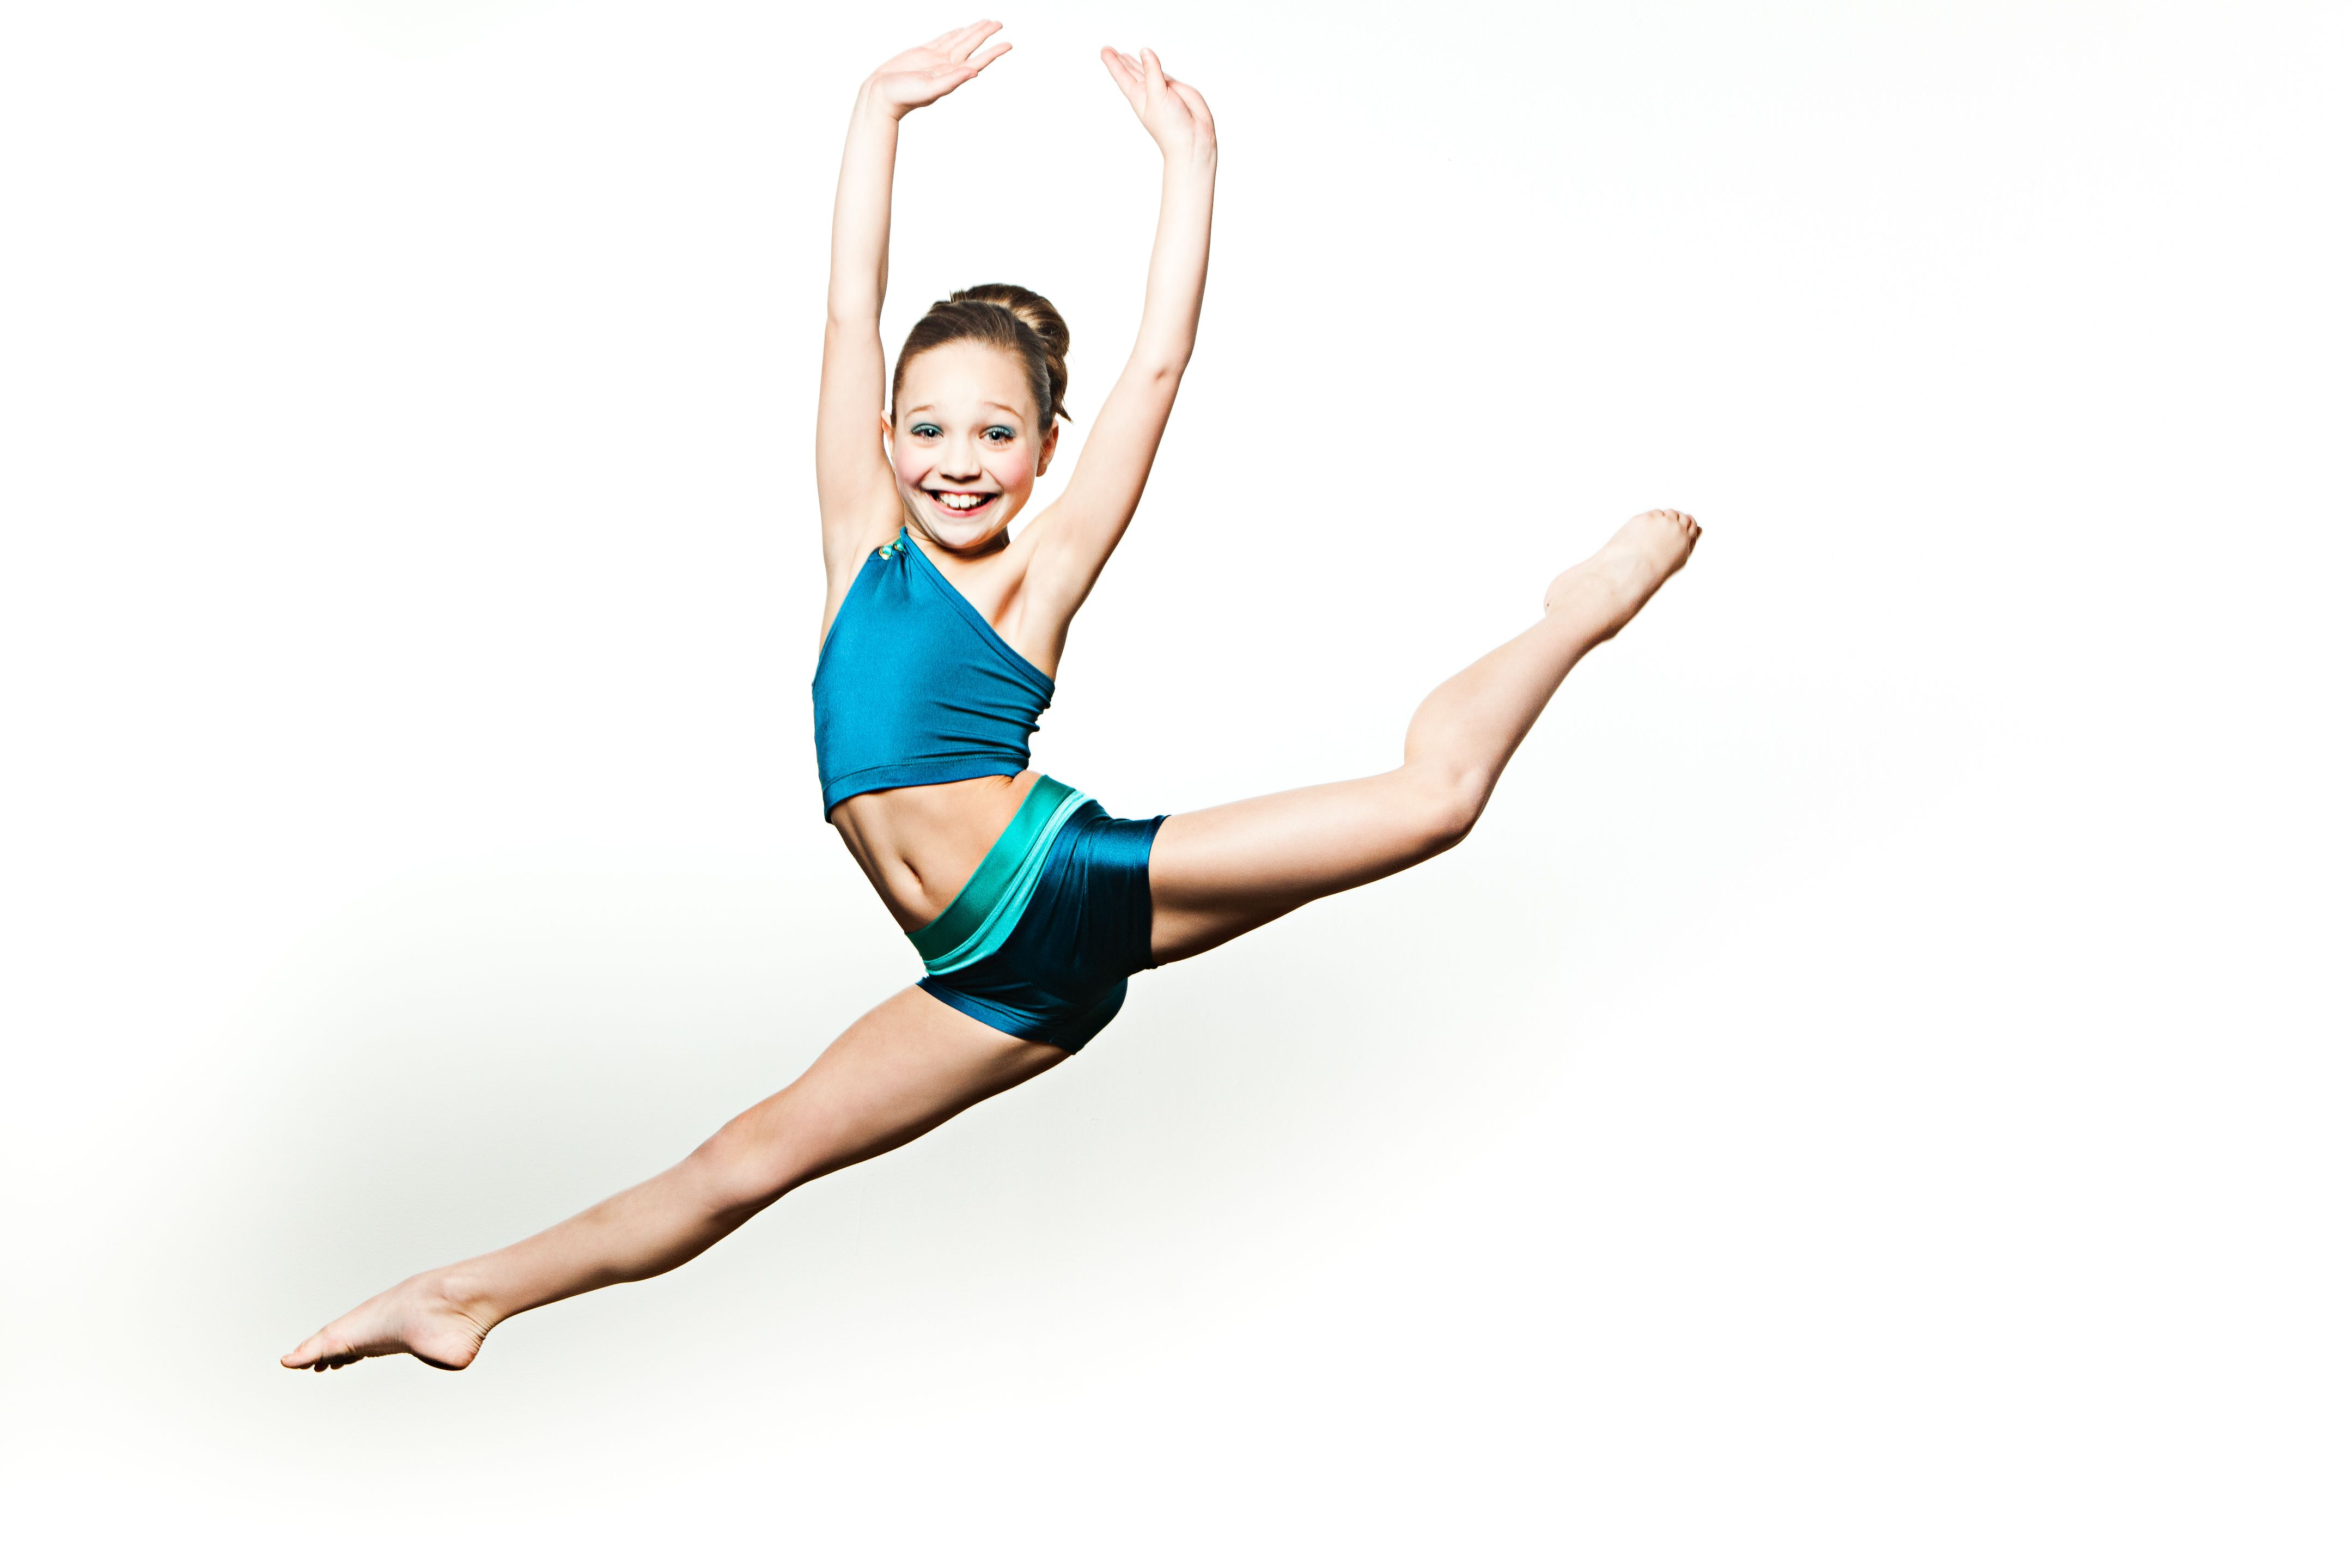 Maddie gets some hang time at OXYjEN's photo shoot ...